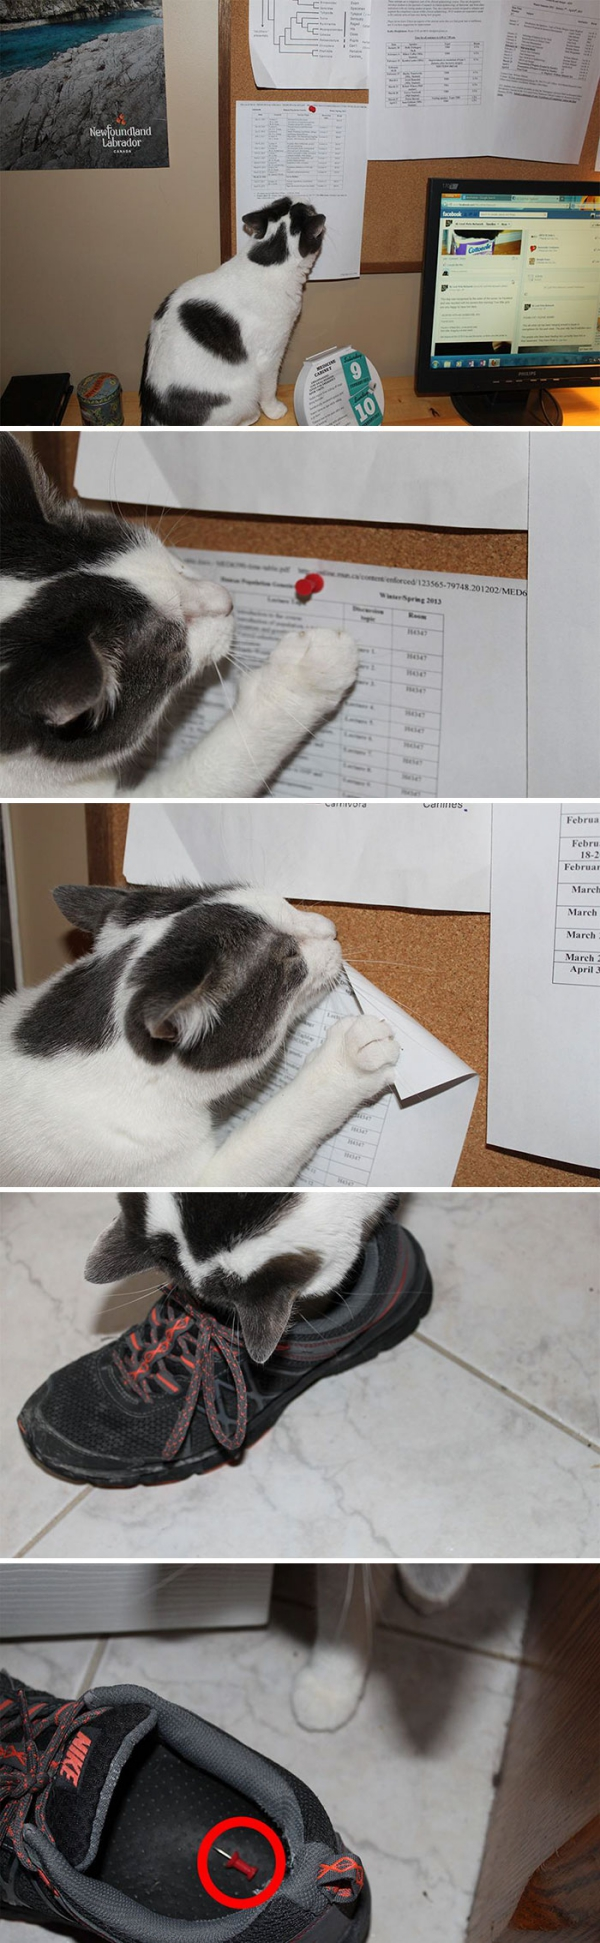 Funny Pictures of Cats being Naughty